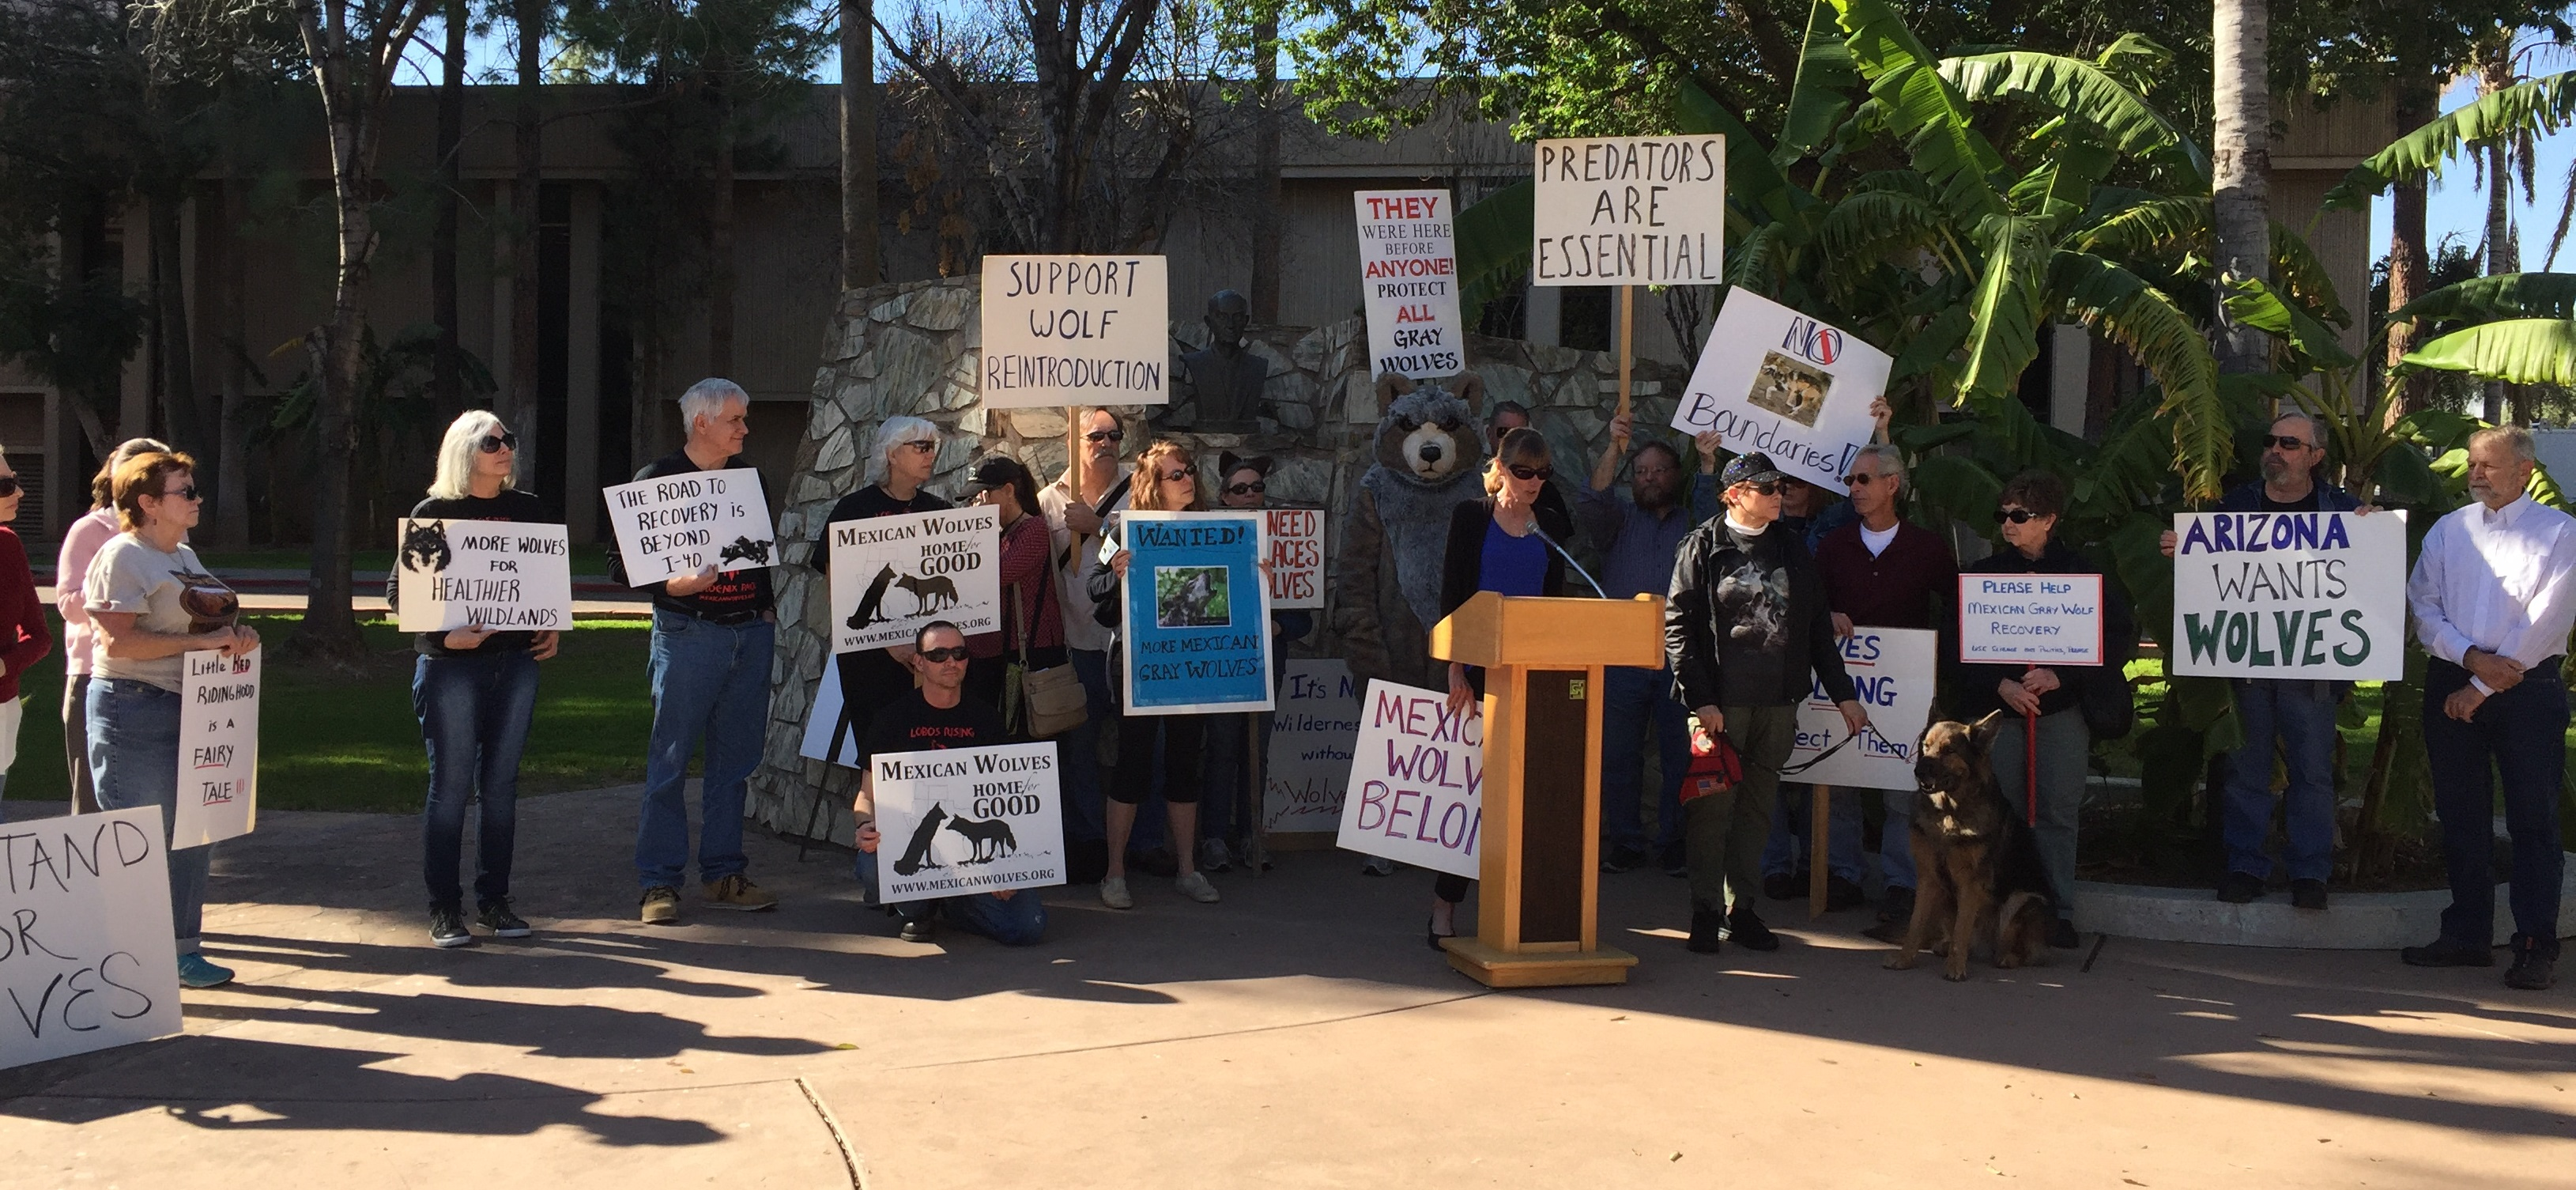 Wolf rally at AZ Capitol Jan2016 cropped